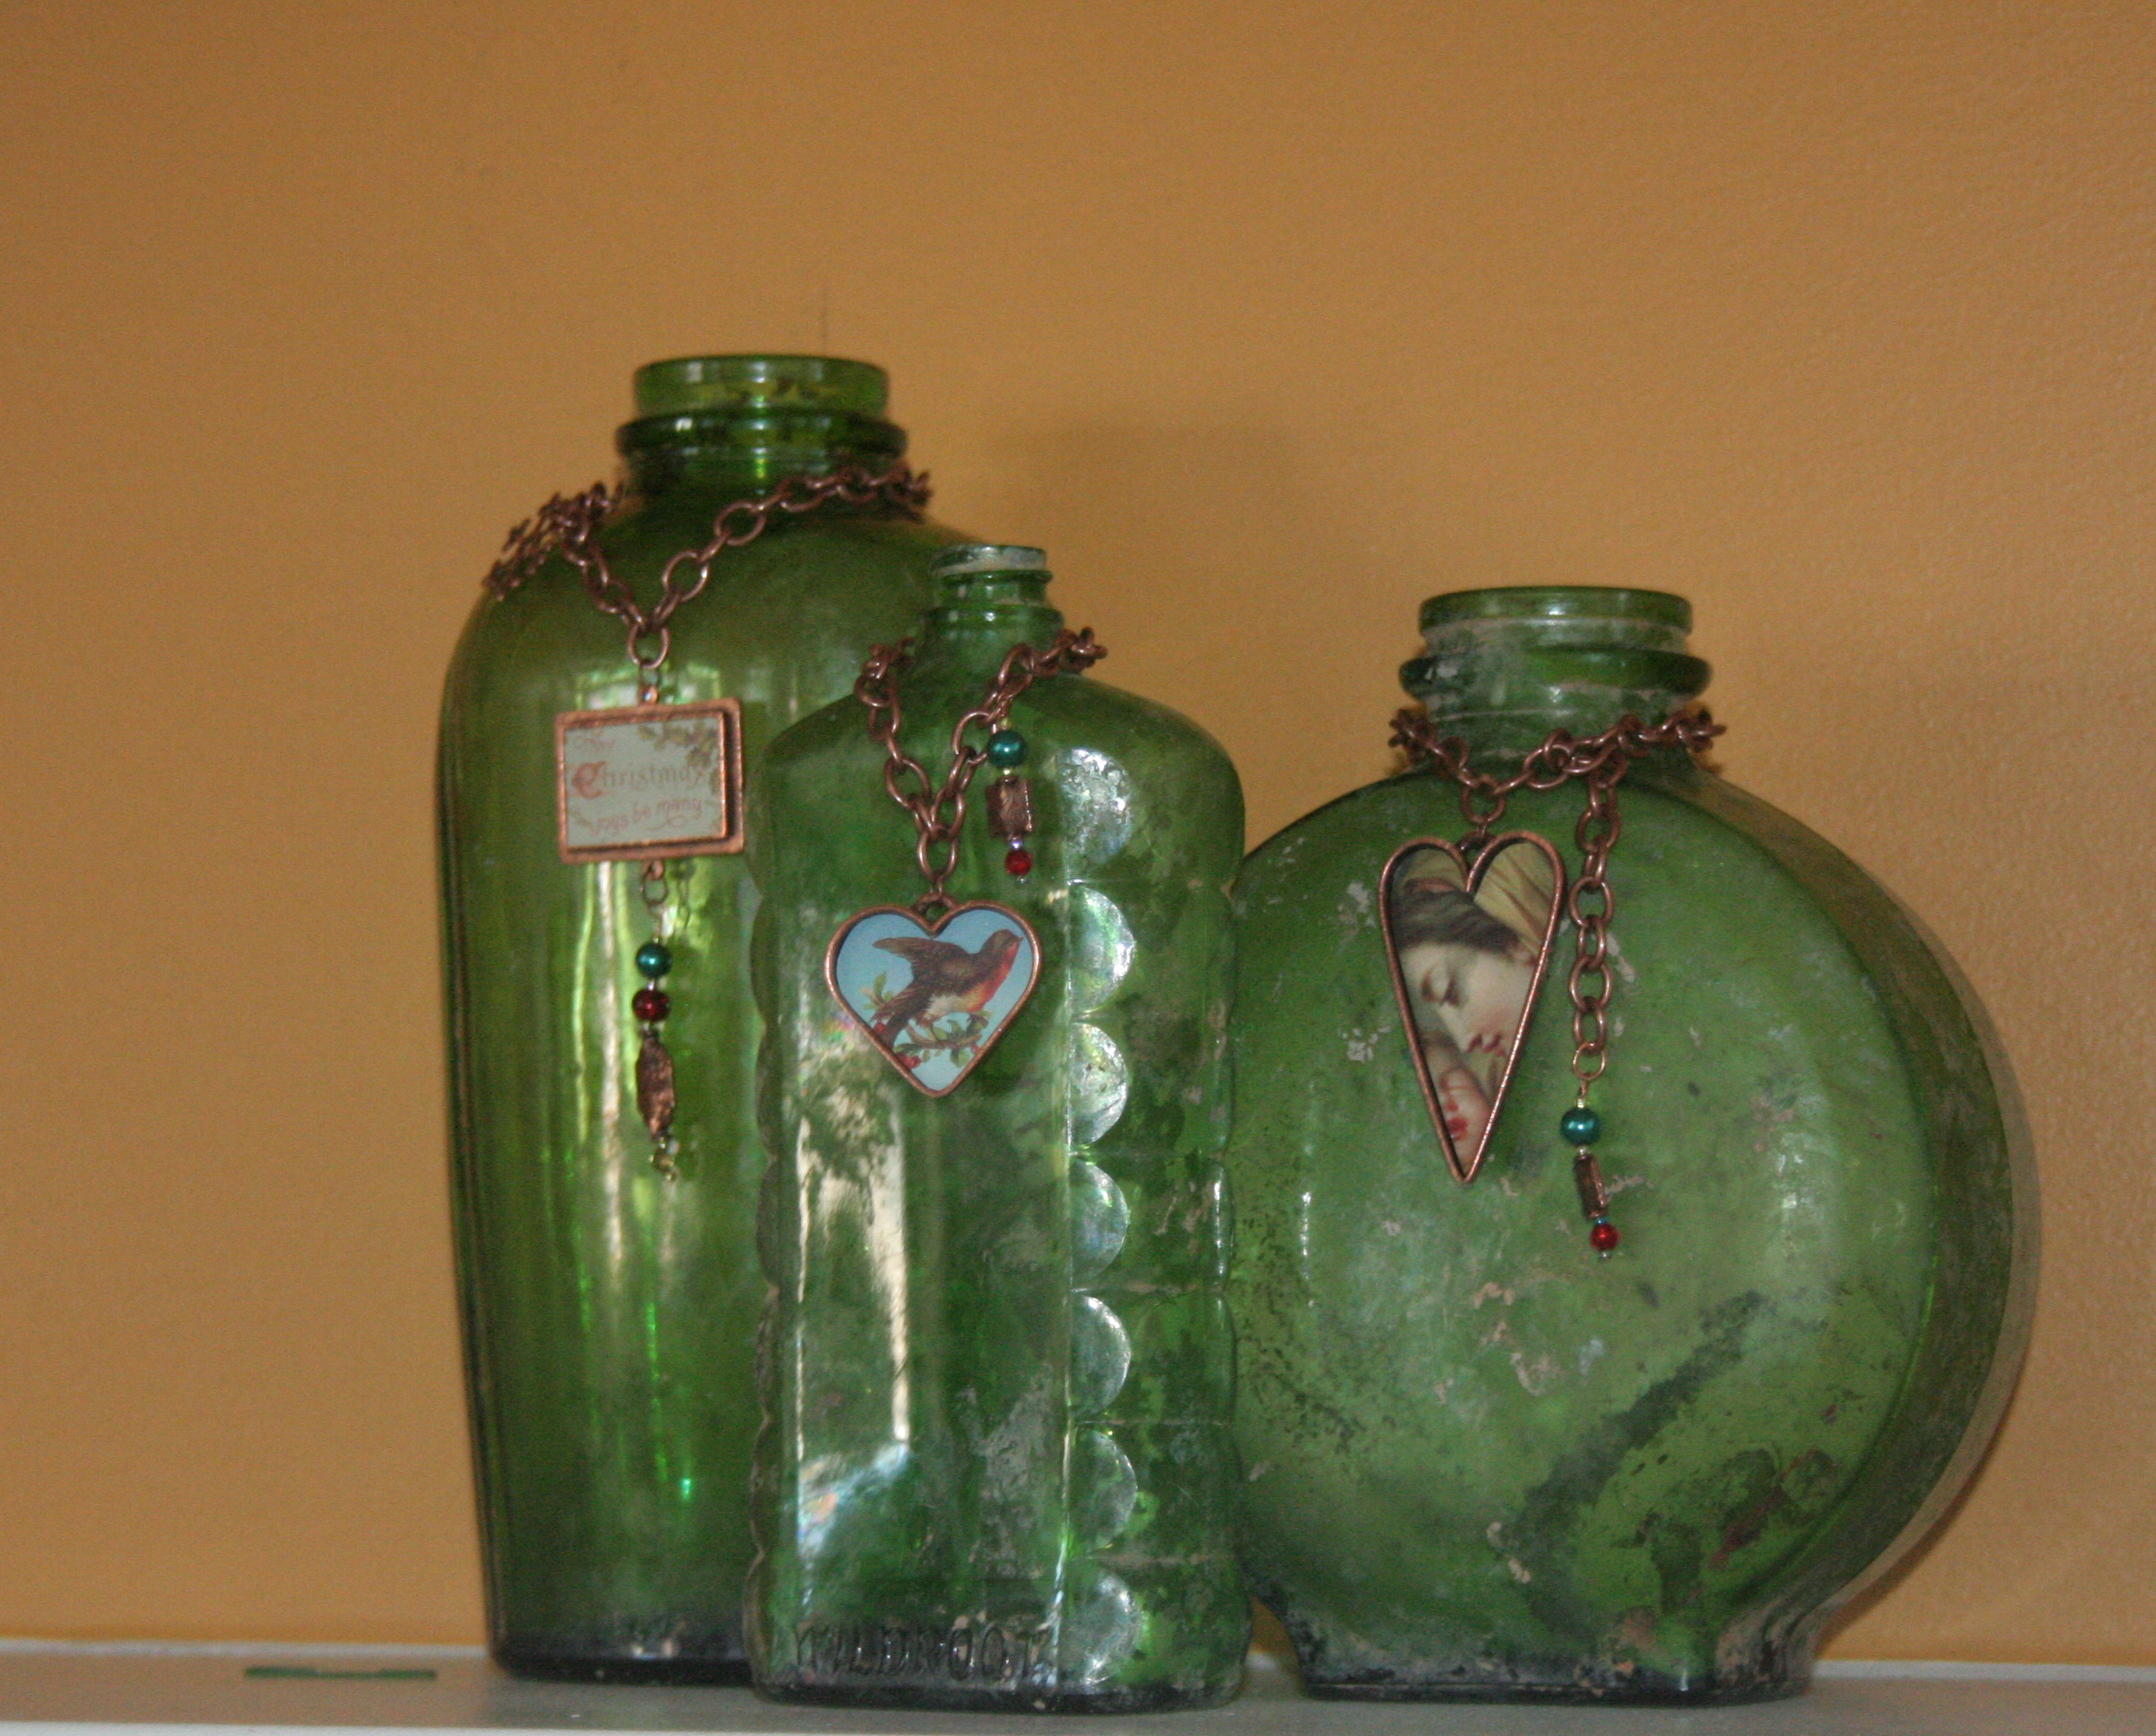 Vintage flea market find bottles with adorned with nunn design